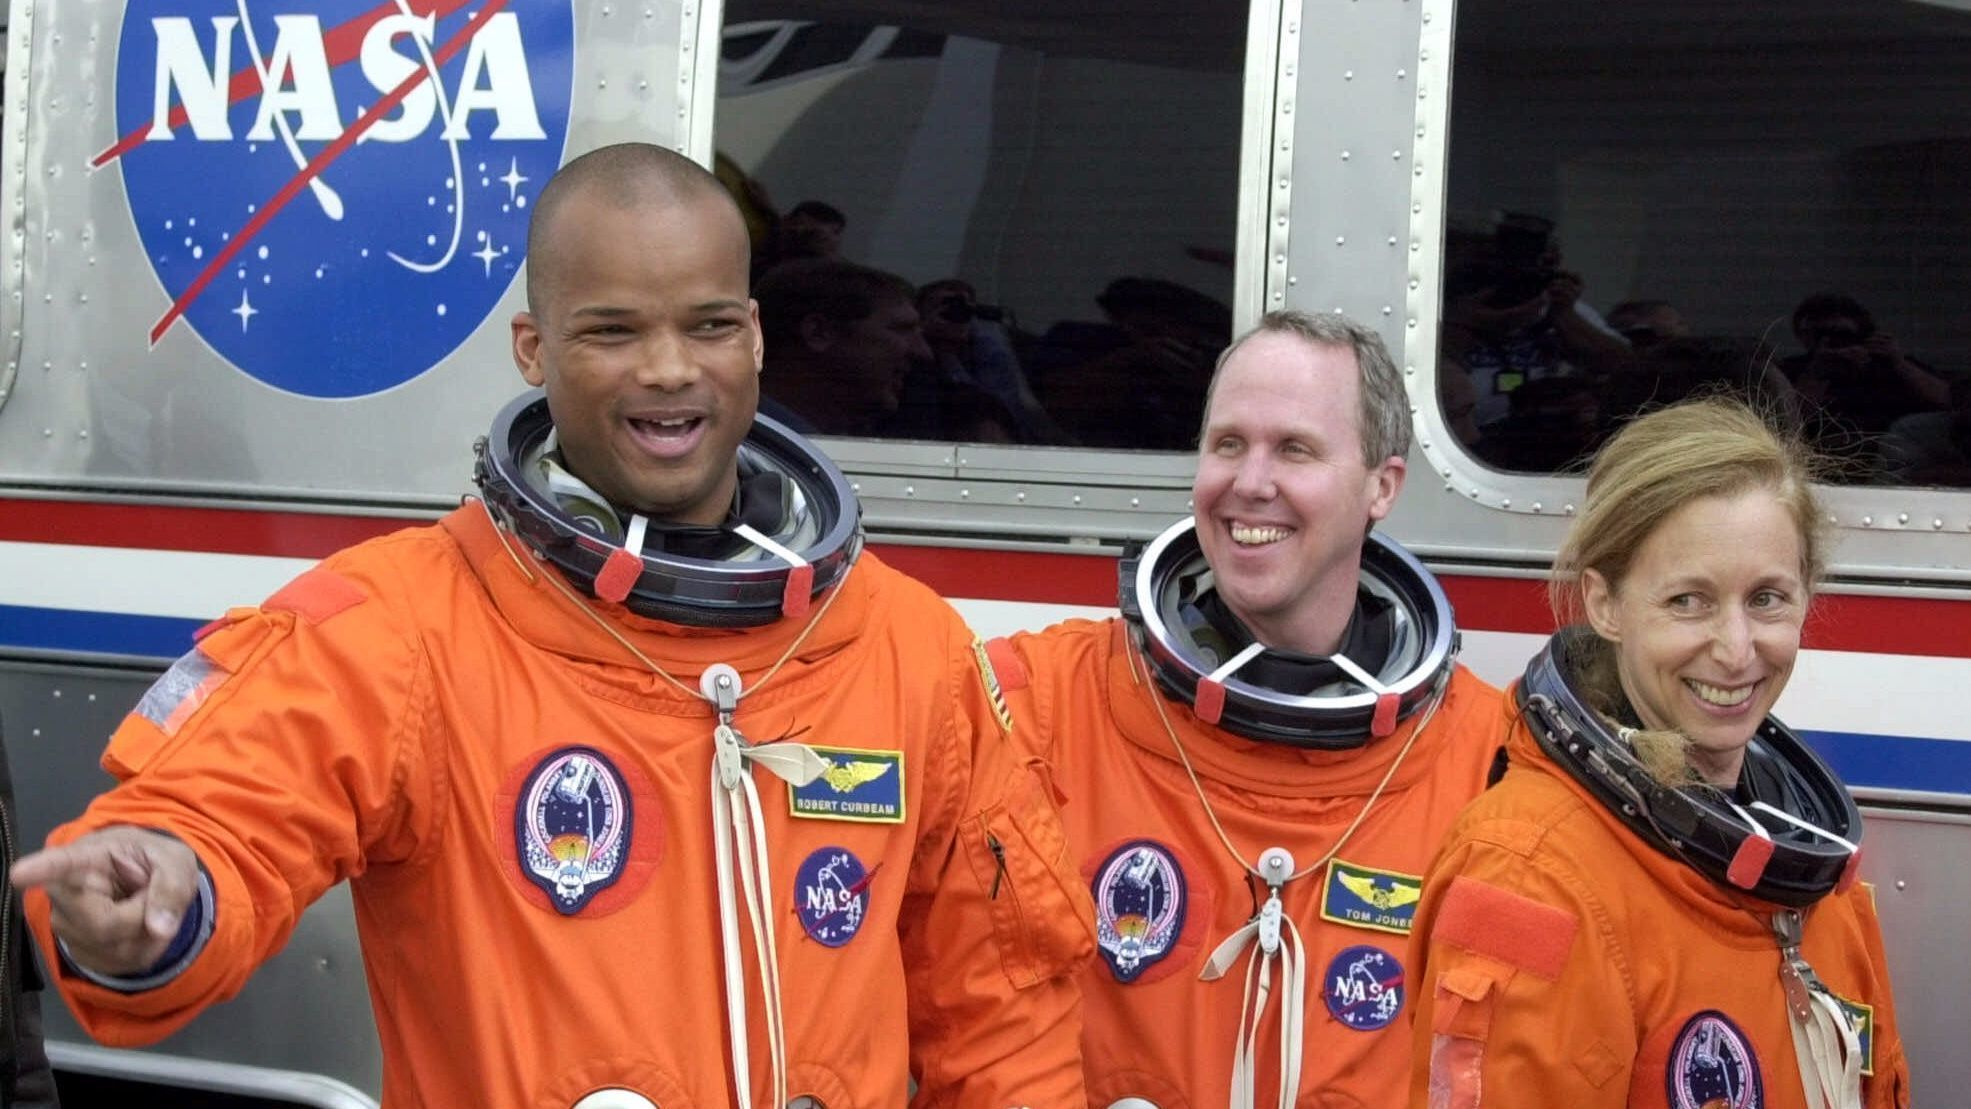 Space shuttle Atlantis mission specialists Robert Curbeam, Thomas Jones and Marsha Ivins, from left, leave crew headquarters Wednesday, Feb. 7, 2001 at Cape Canaveral, Fla.